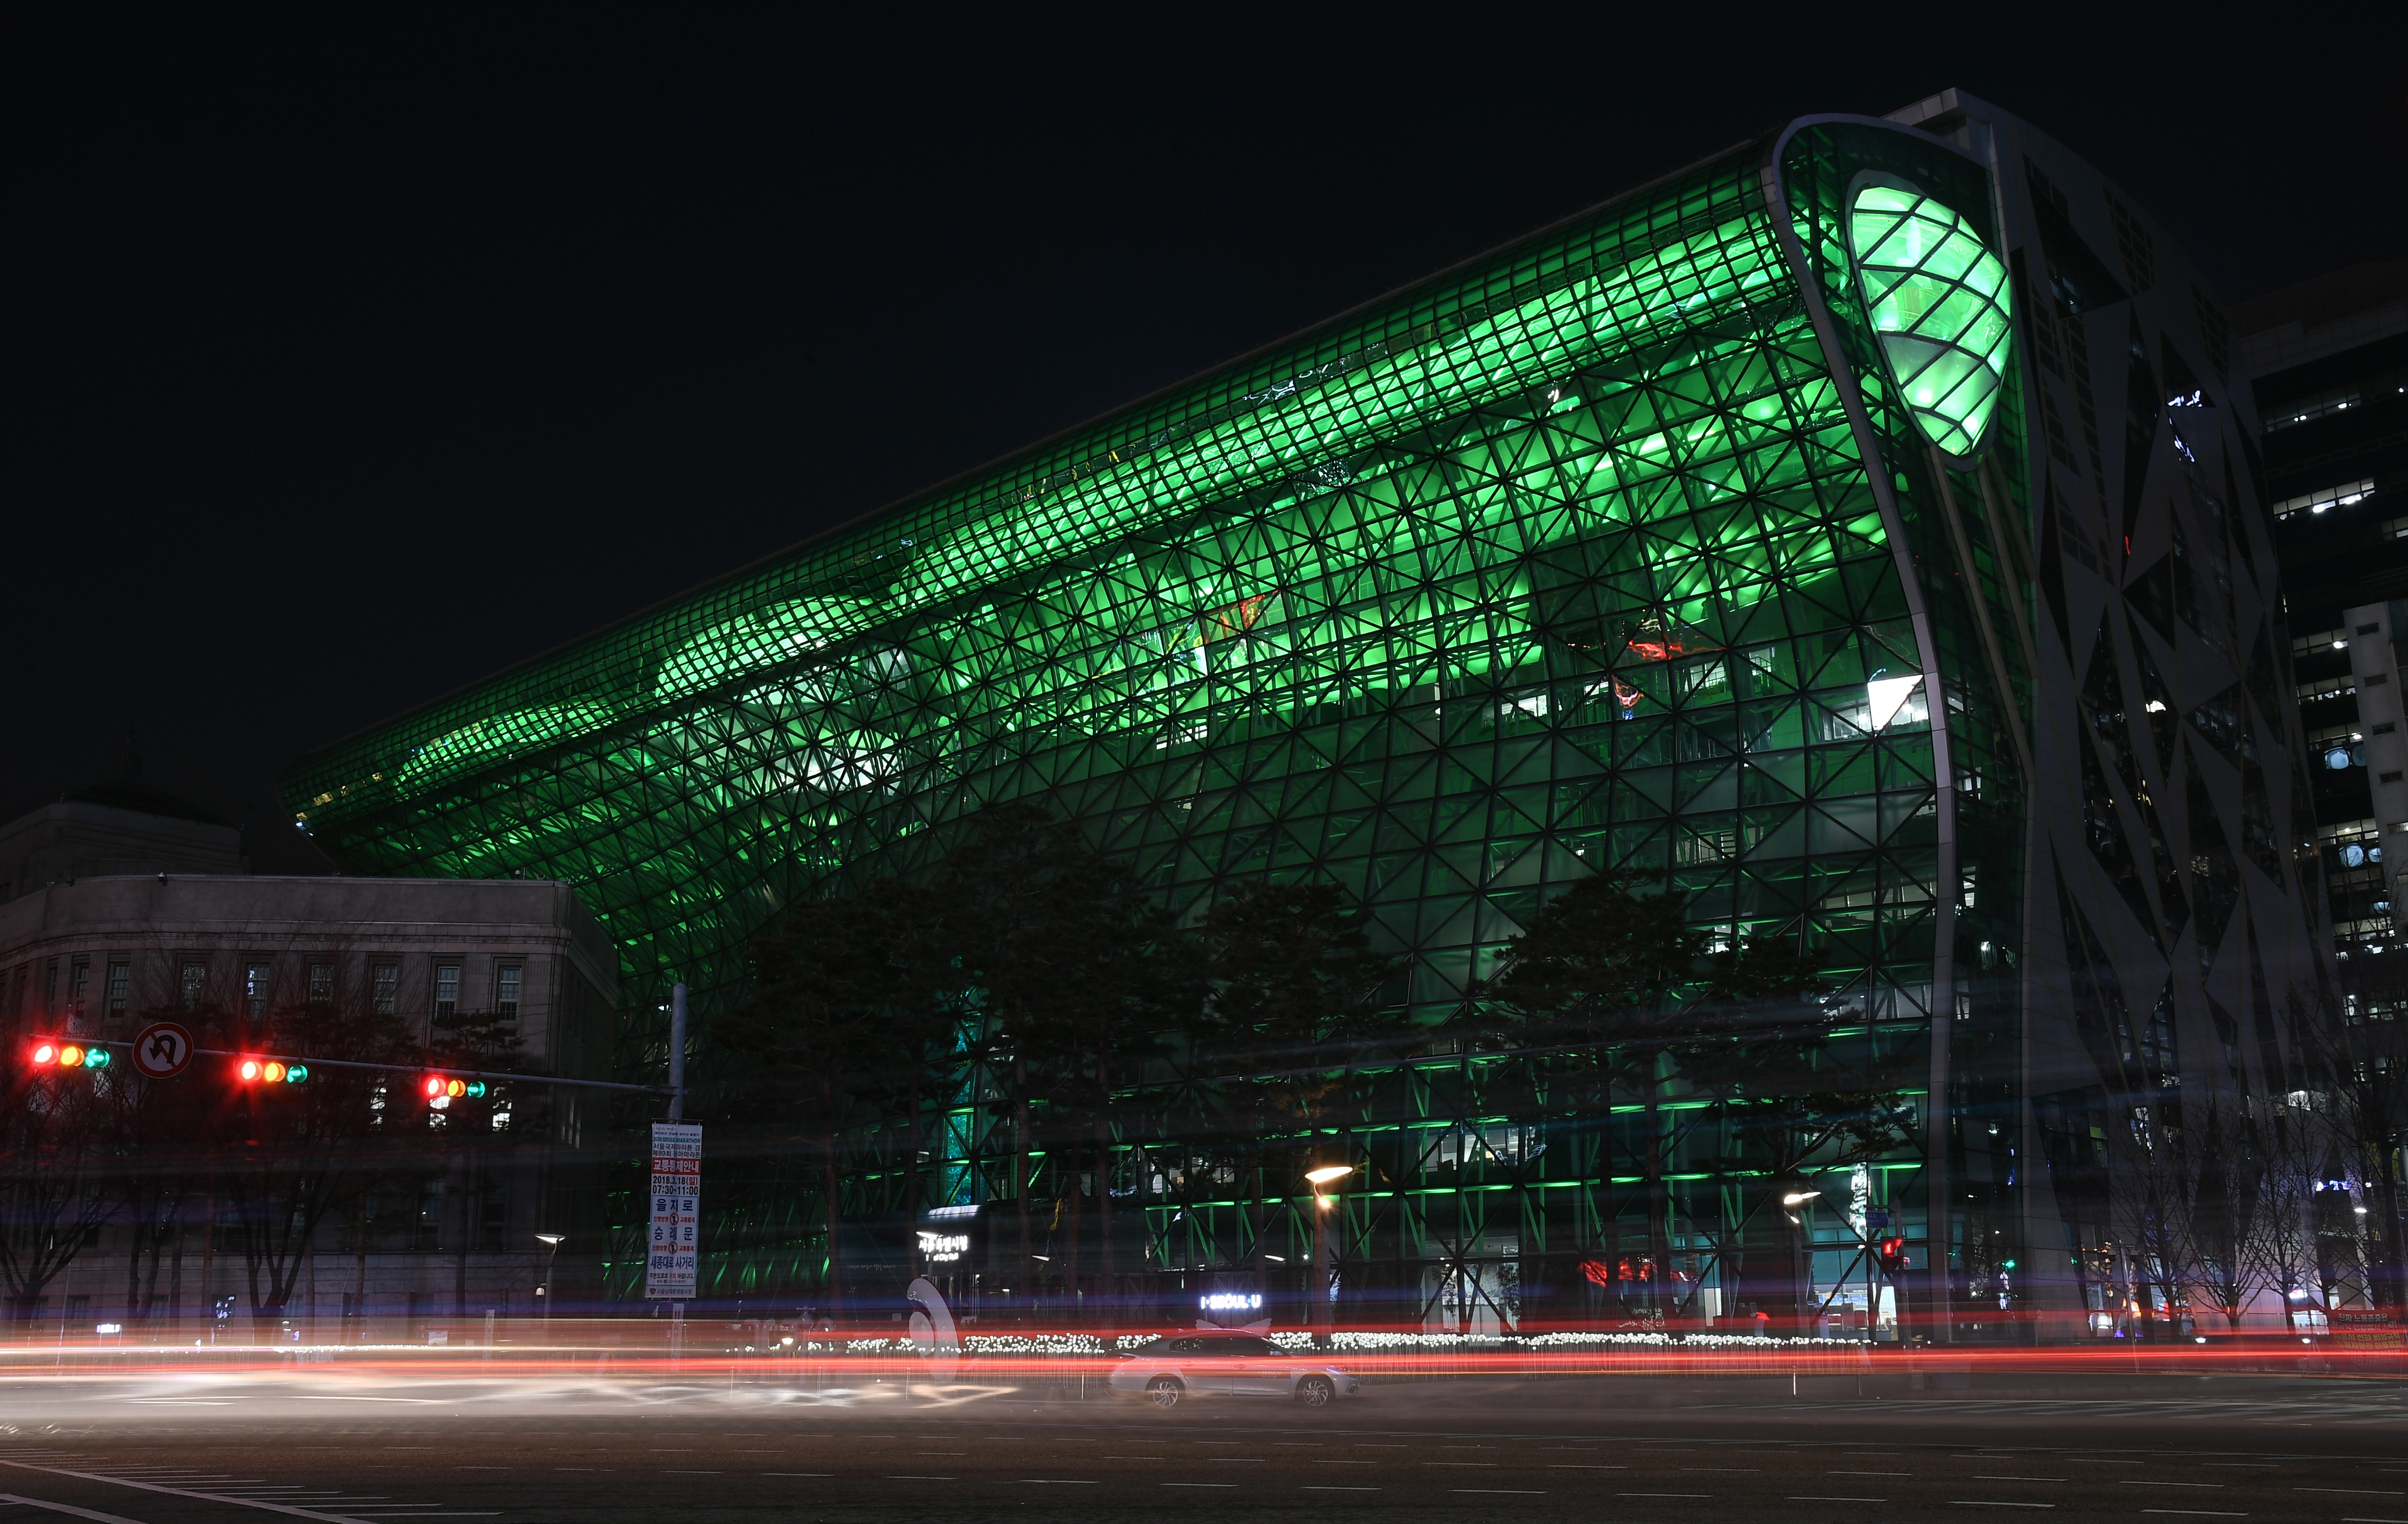 Not to be outdone, City Hall in Seoul, South Korea, also went green